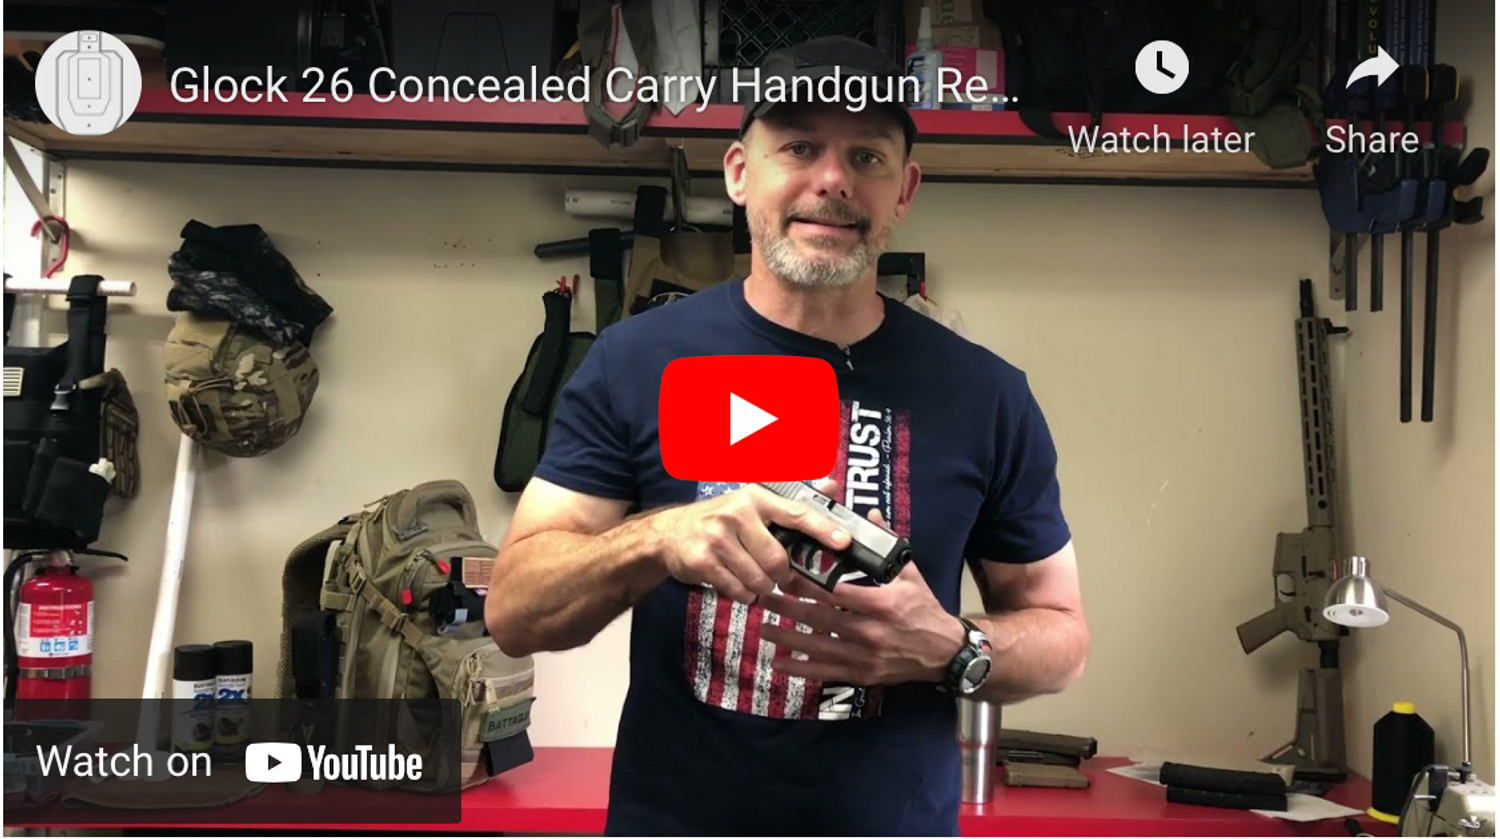 Glock 26 Concealed Carry Handgun Review